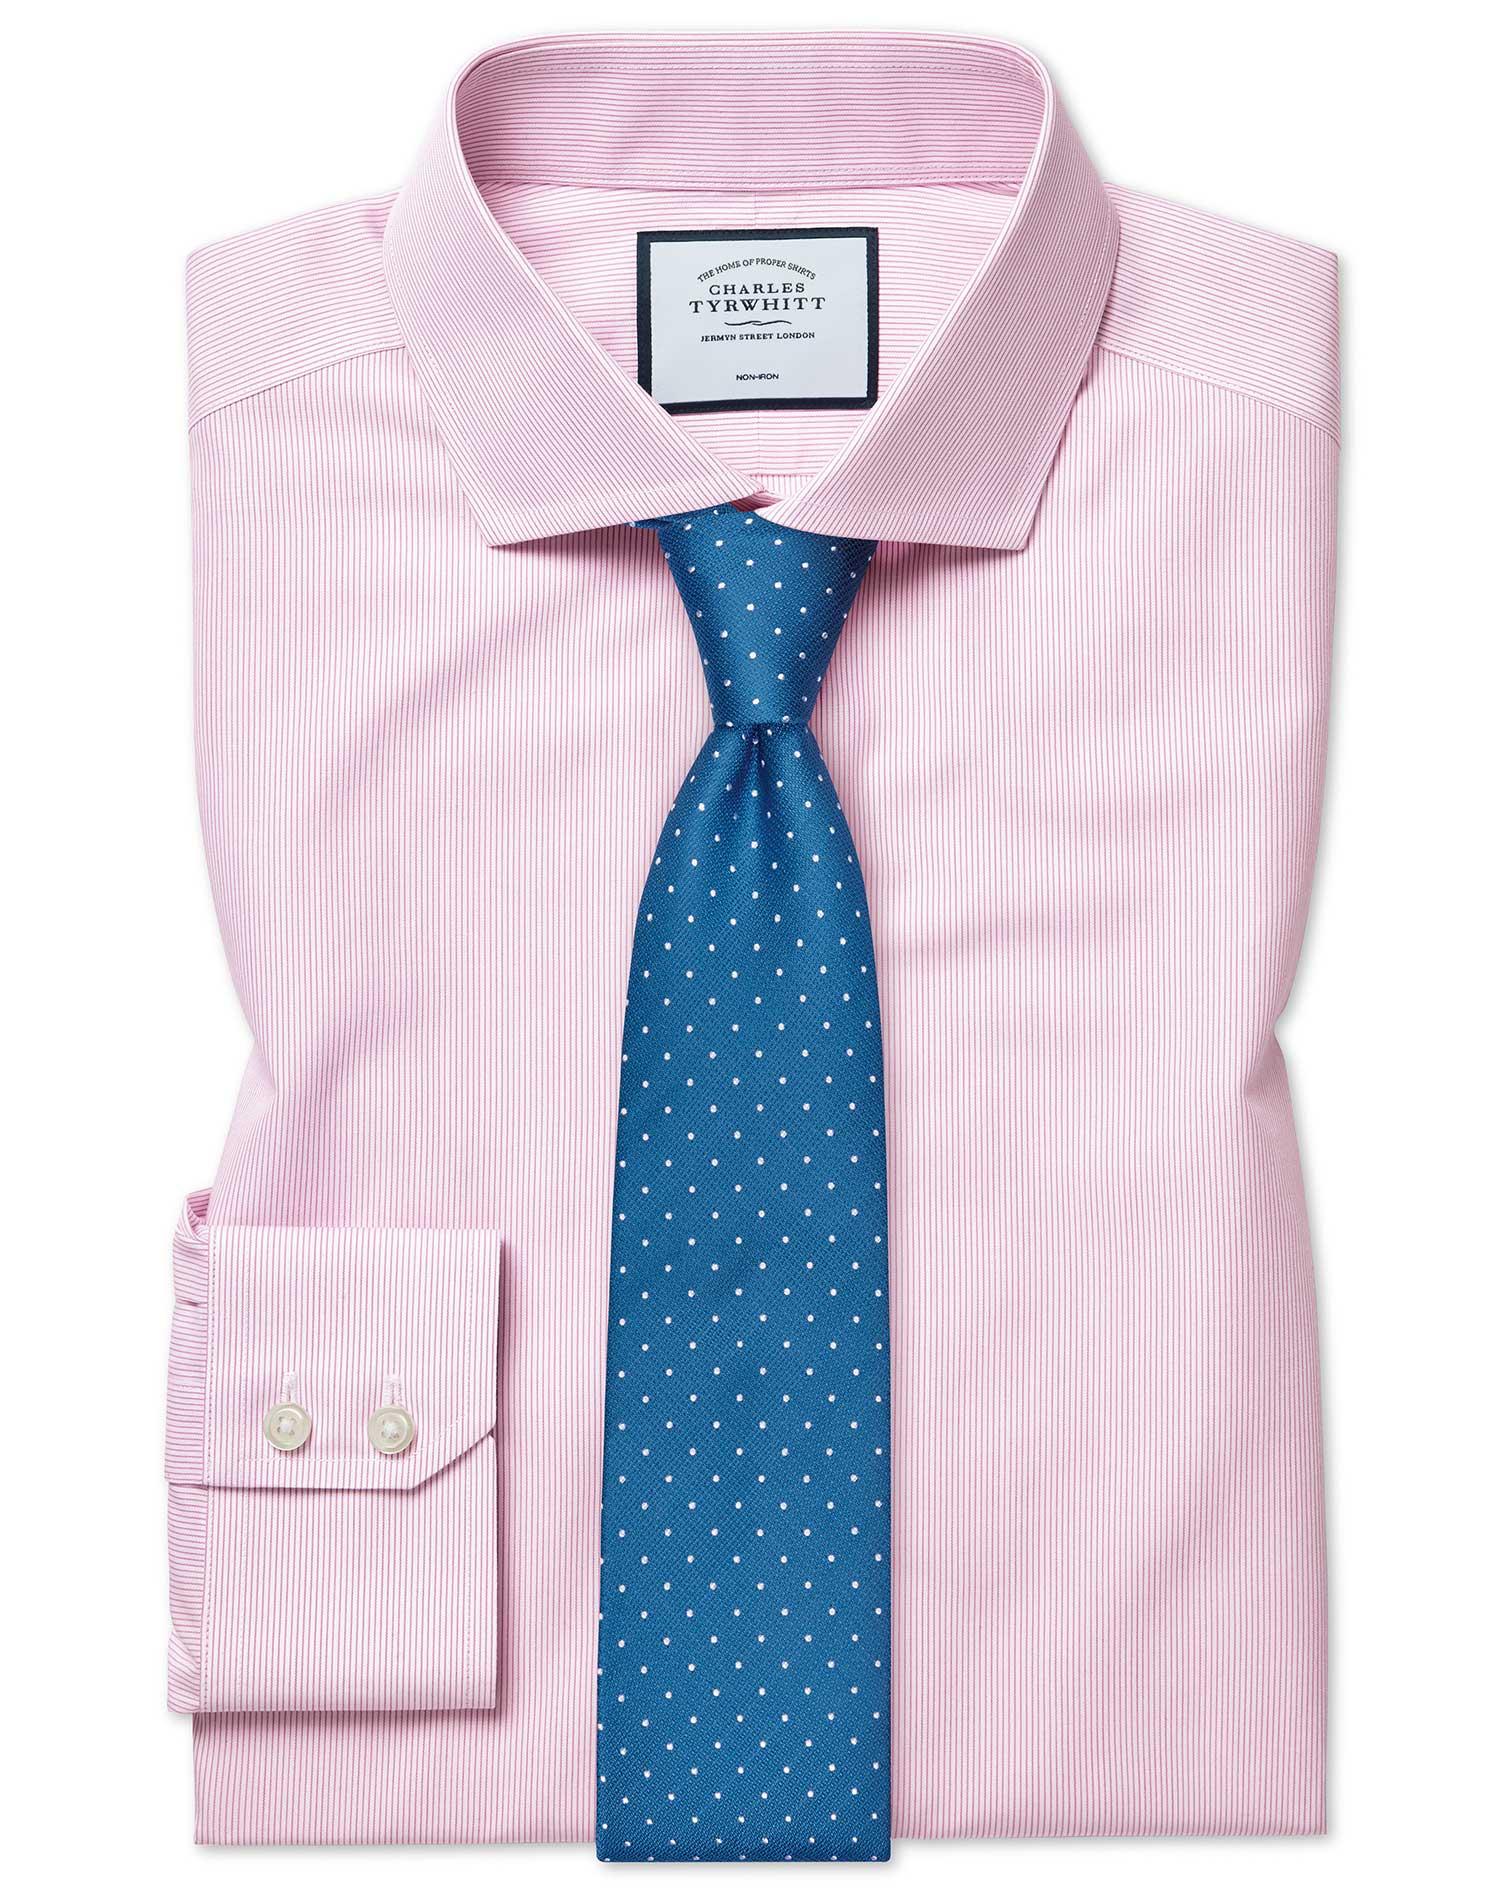 Slim Fit Non-Iron Tyrwhitt Cool Poplin Pink Stripe Cotton Formal Shirt Single Cuff Size 17/34 by Cha